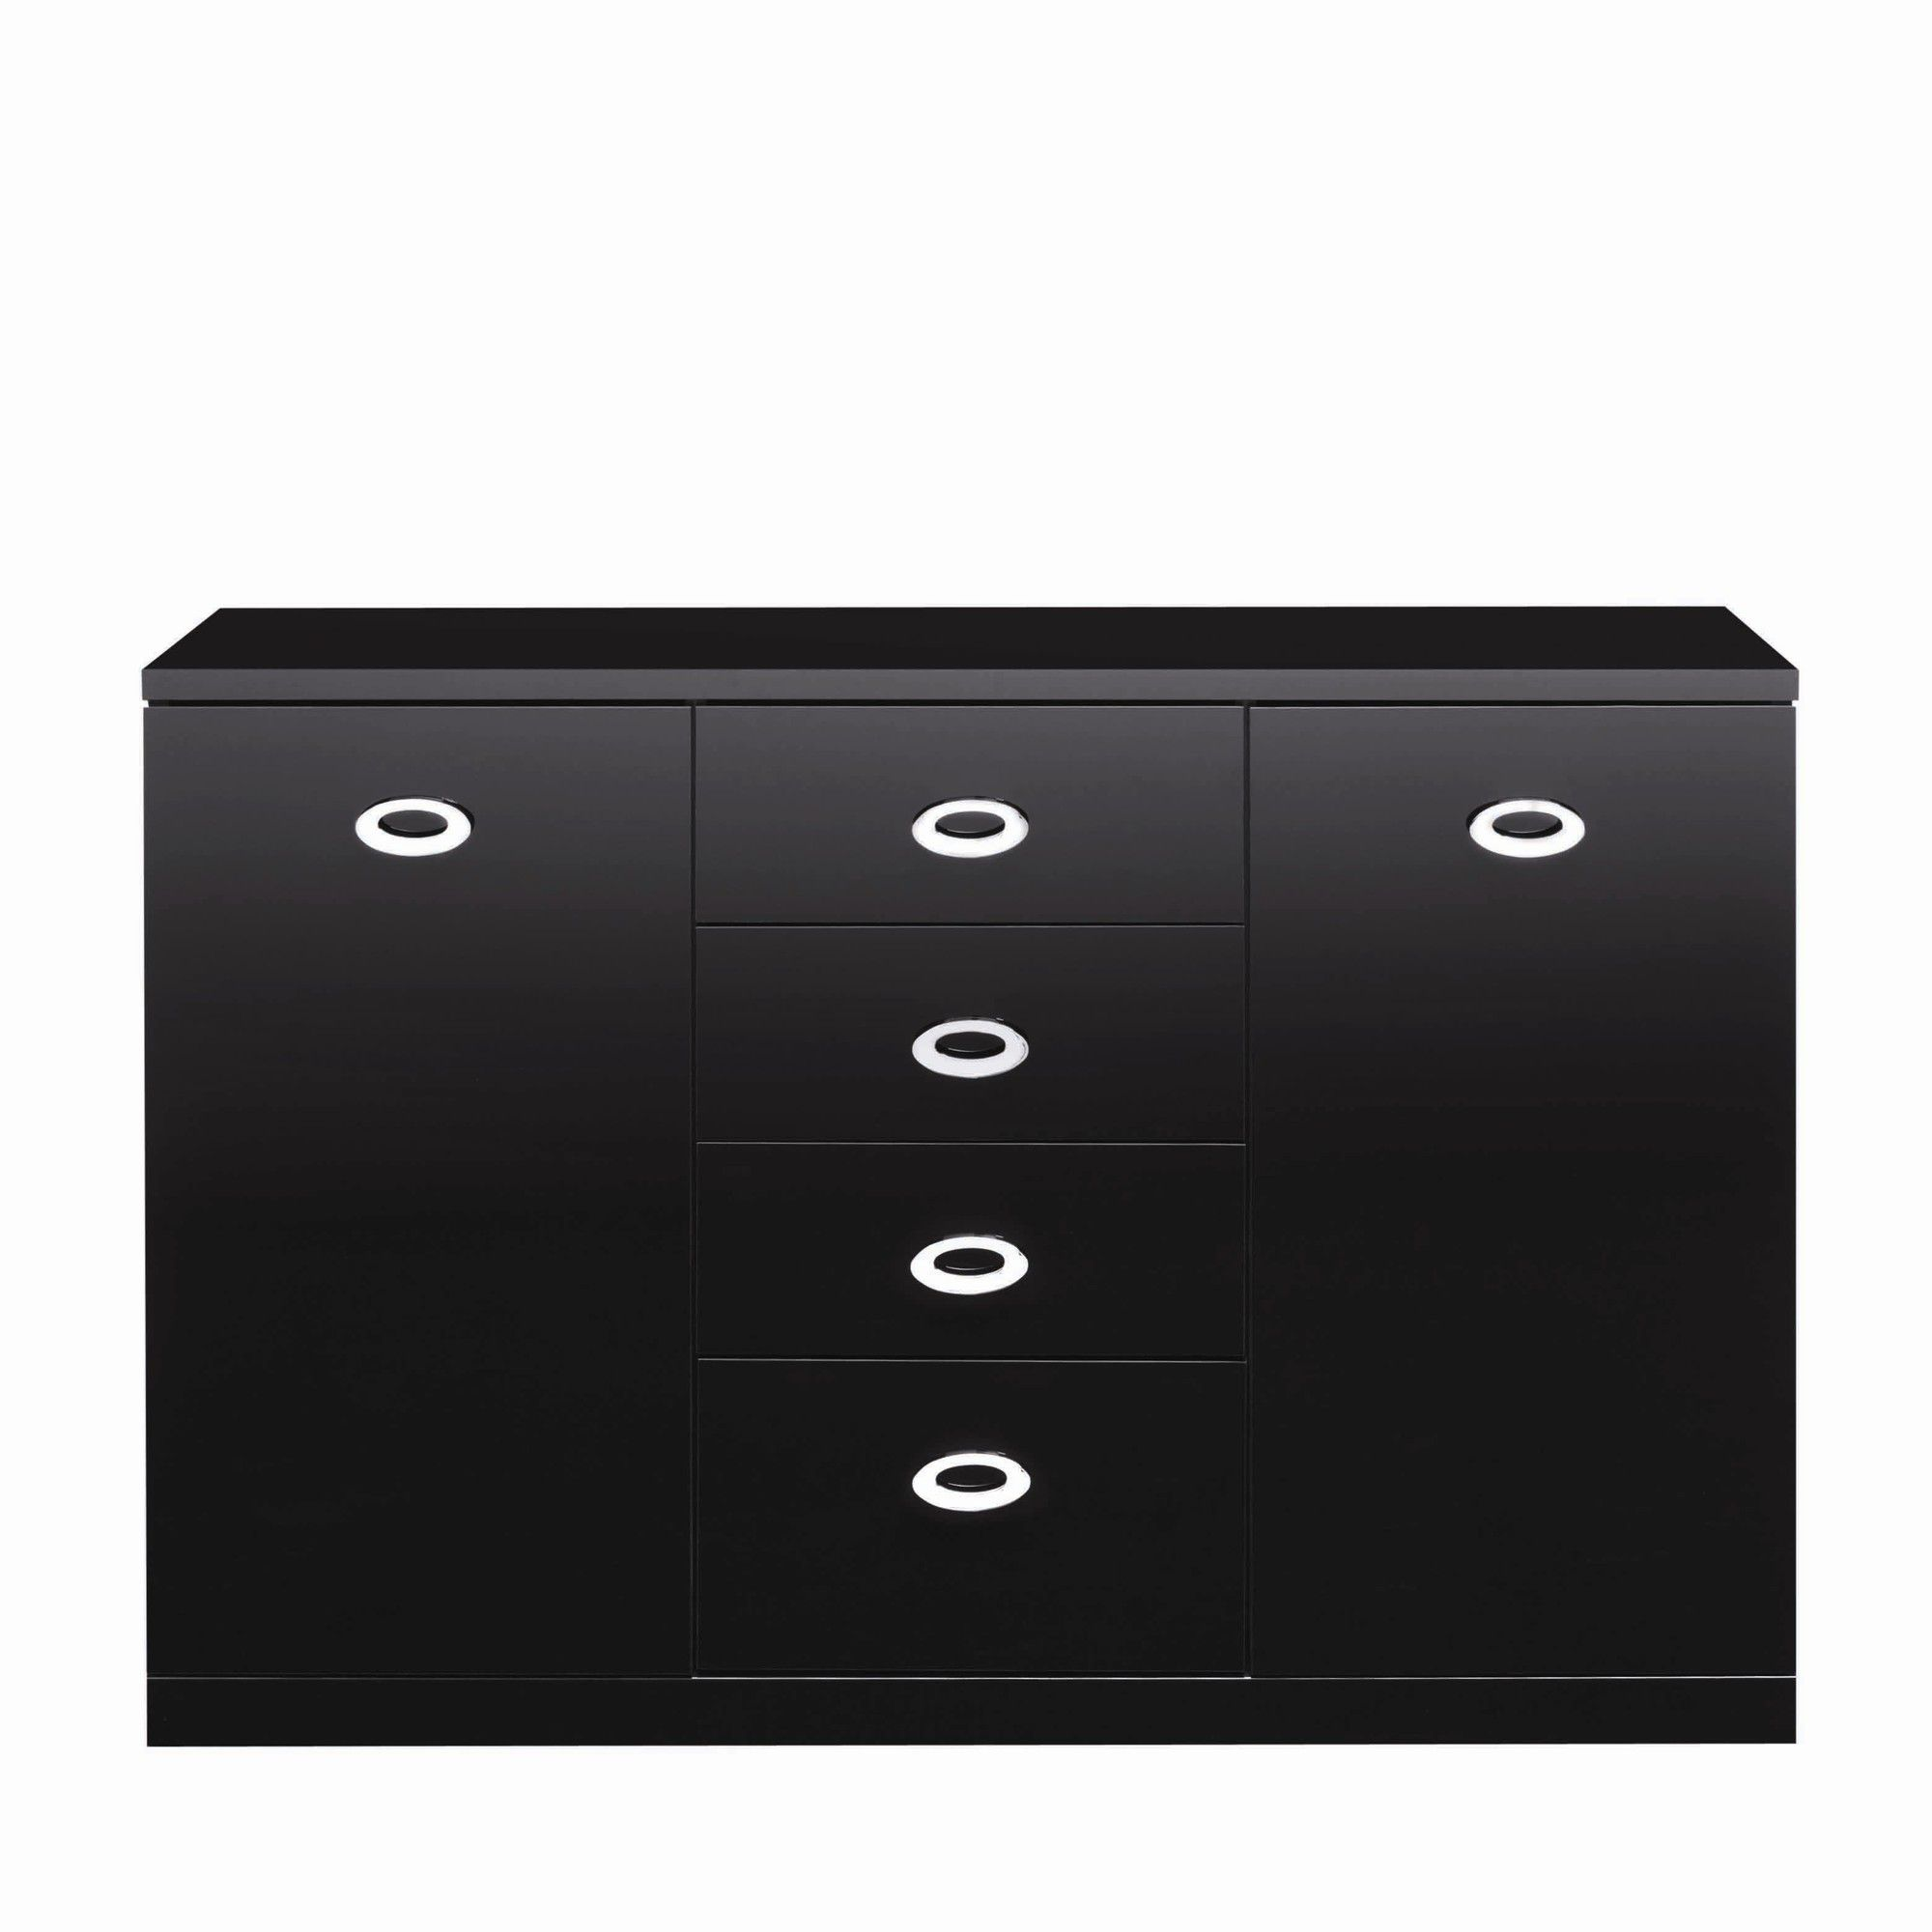 Caxton Manhattan Small 2 Door / 4 Drawer Sideboard in Black Gloss at Tesco Direct